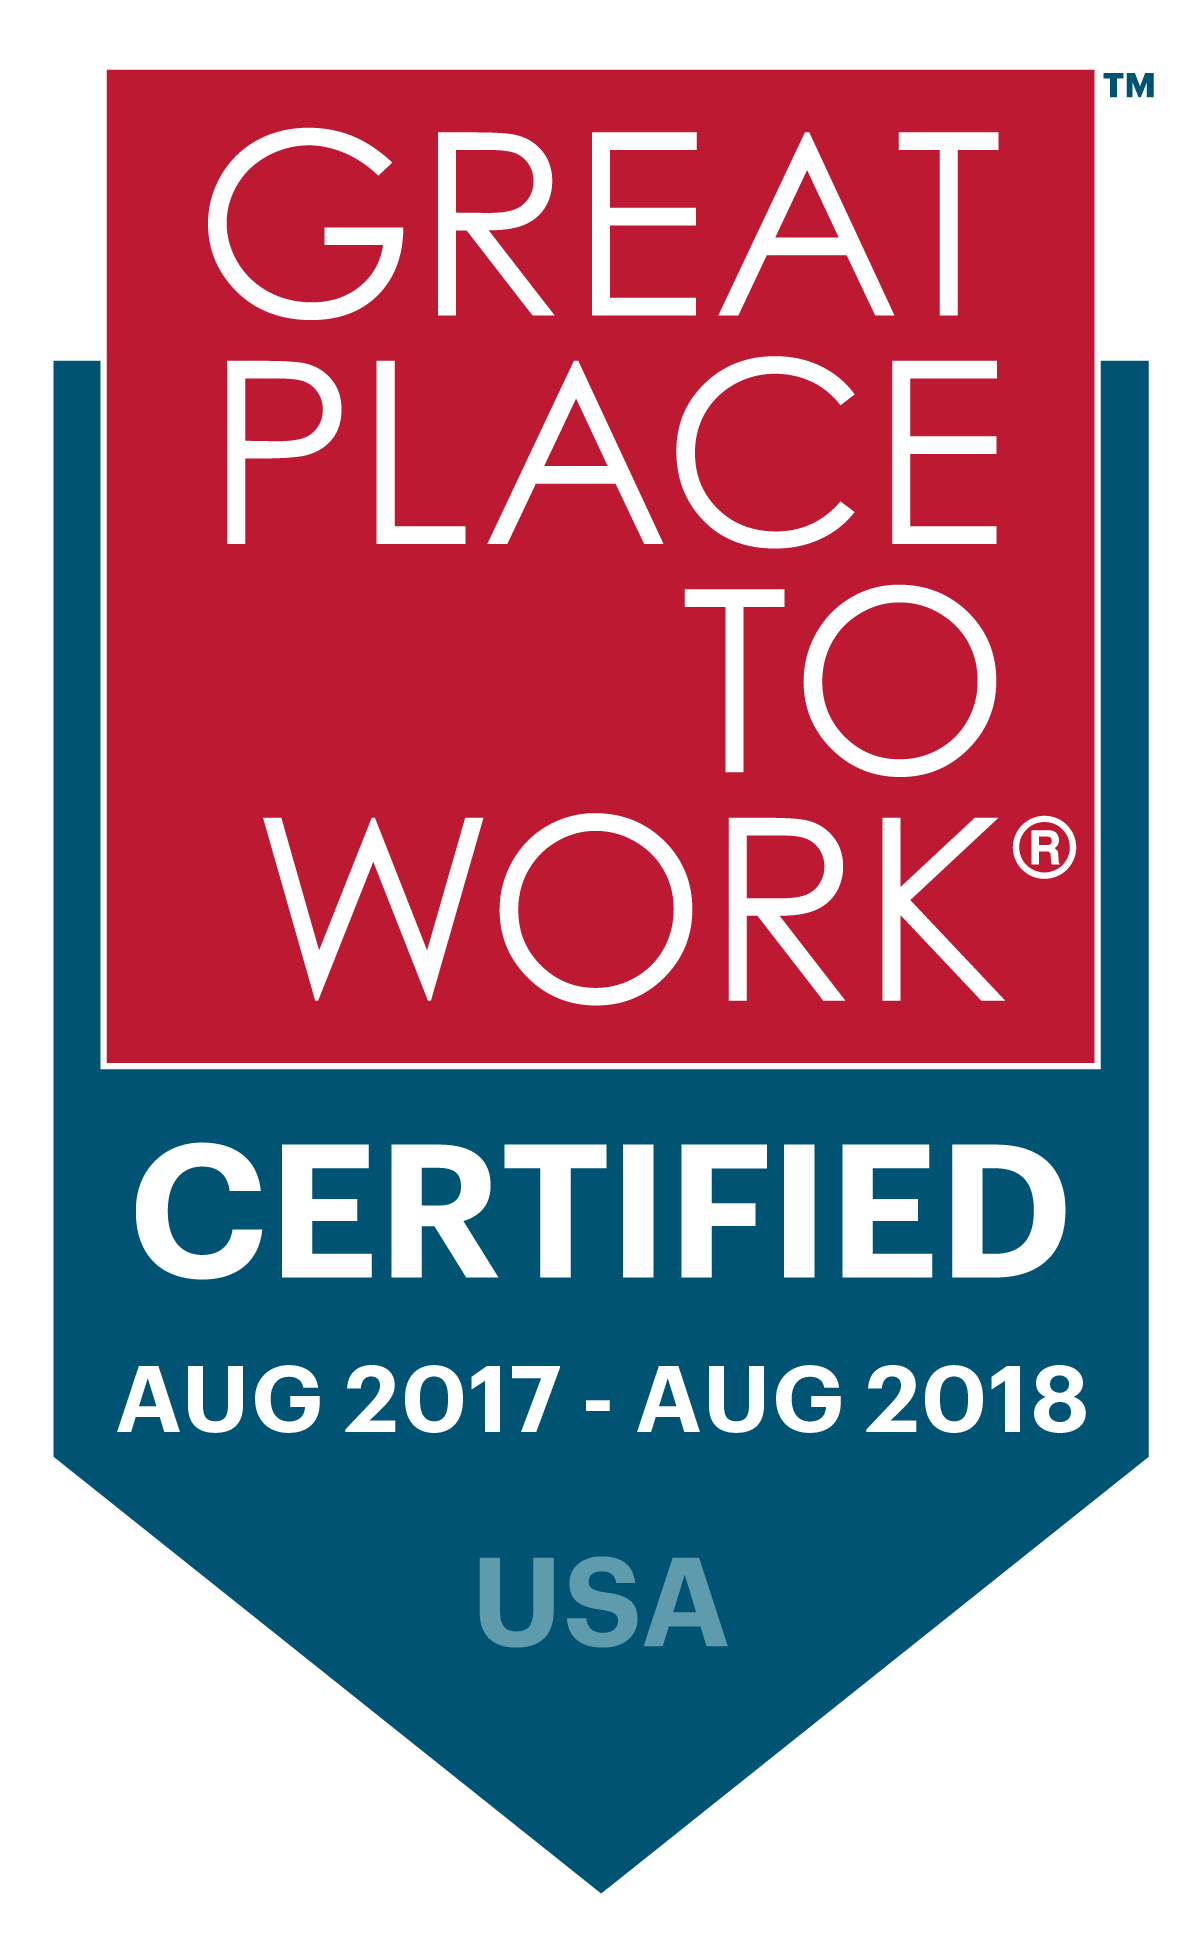 Great places to work.